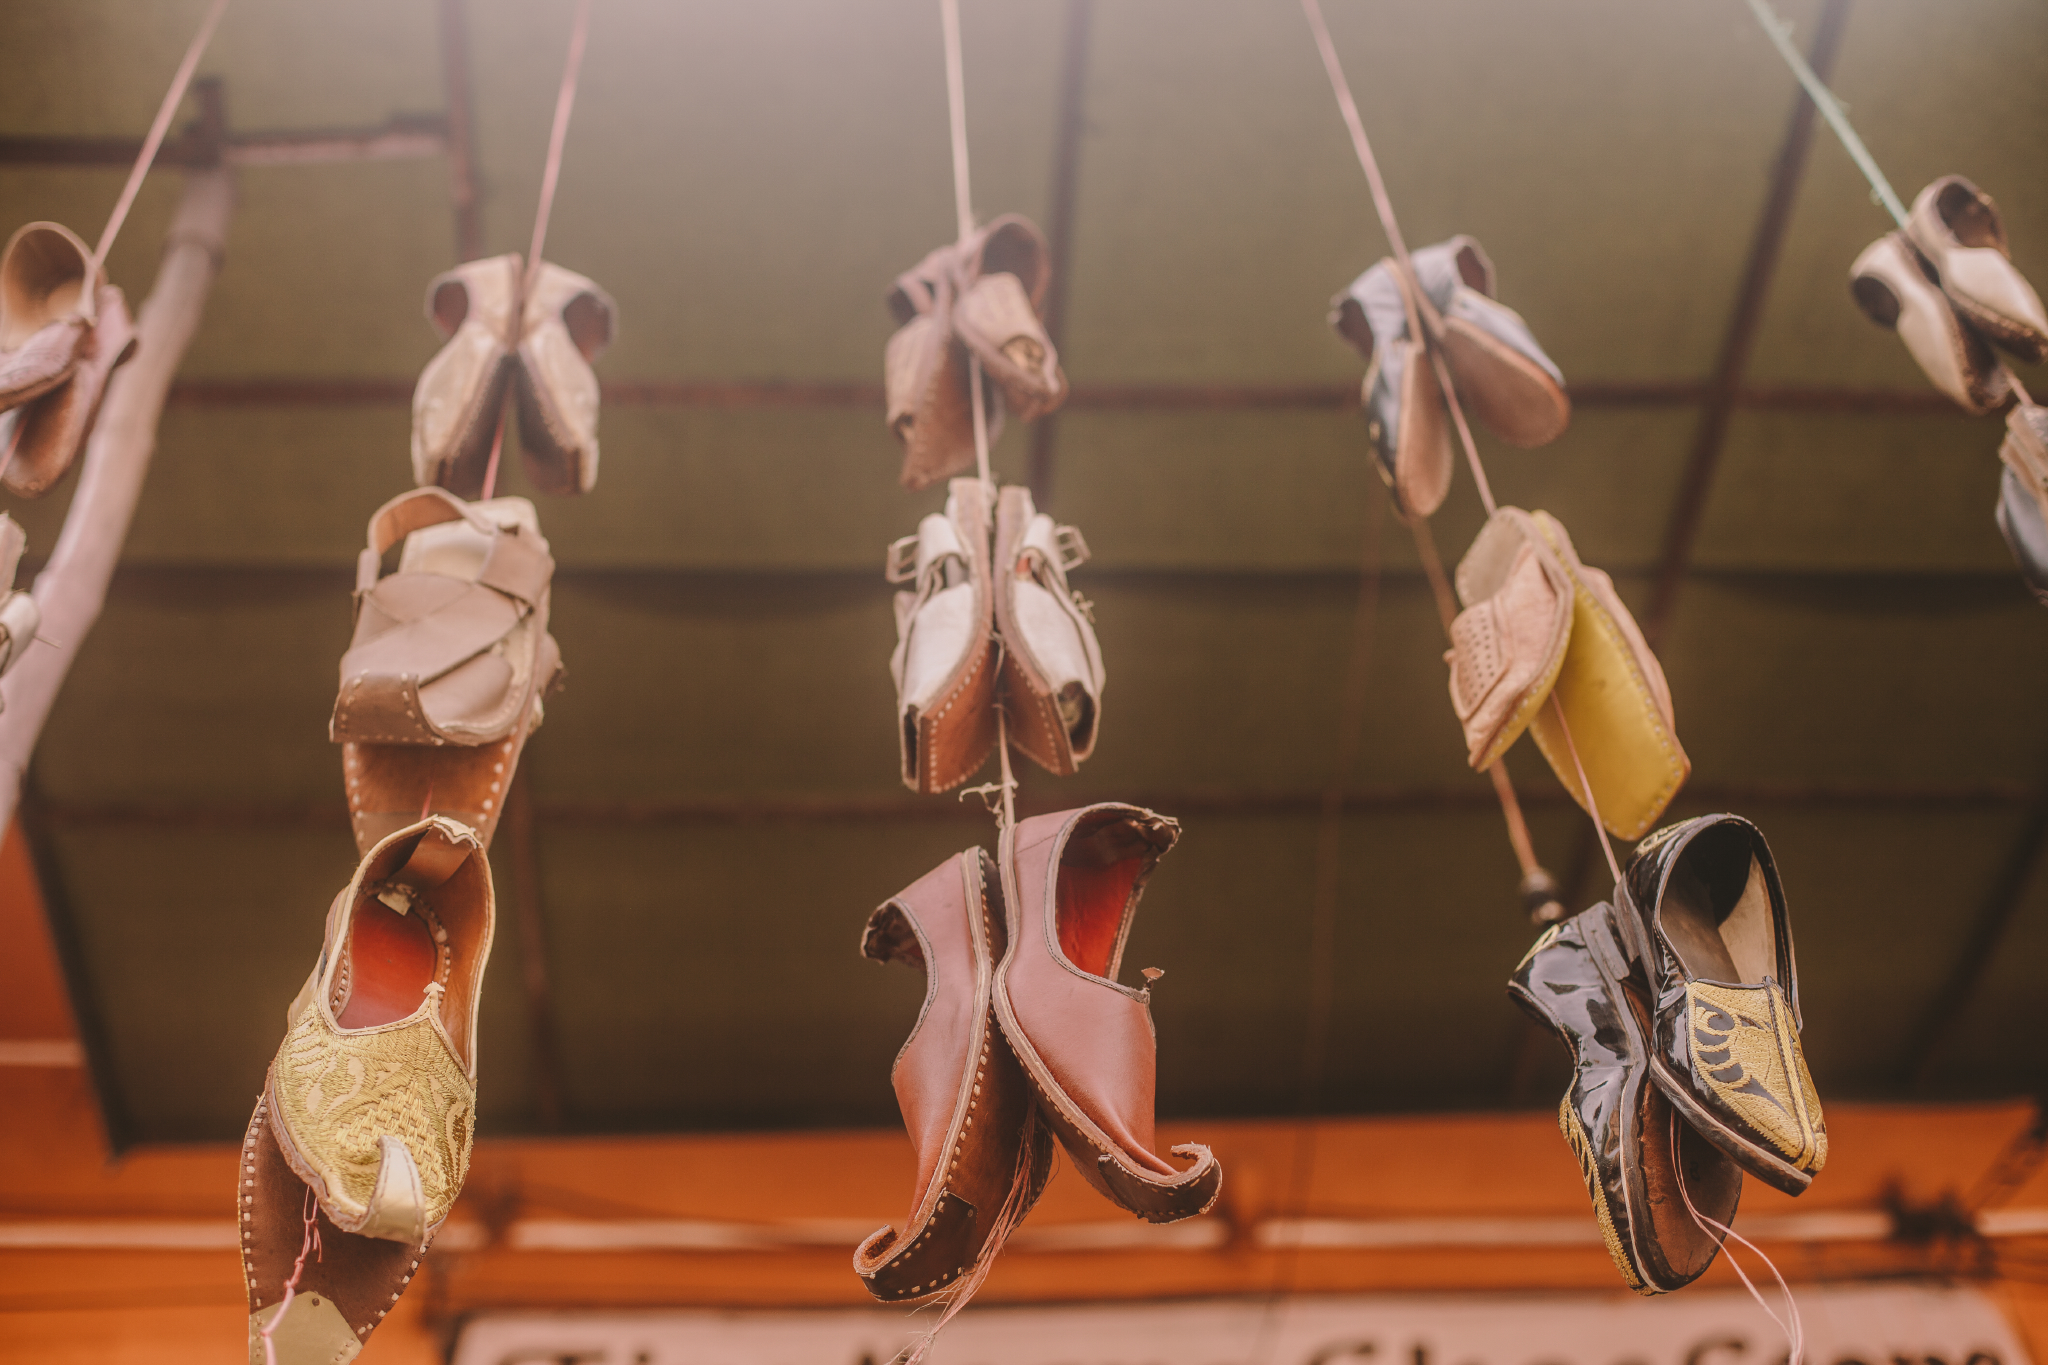 san diego wedding   photographer | shoes hanging by a rope